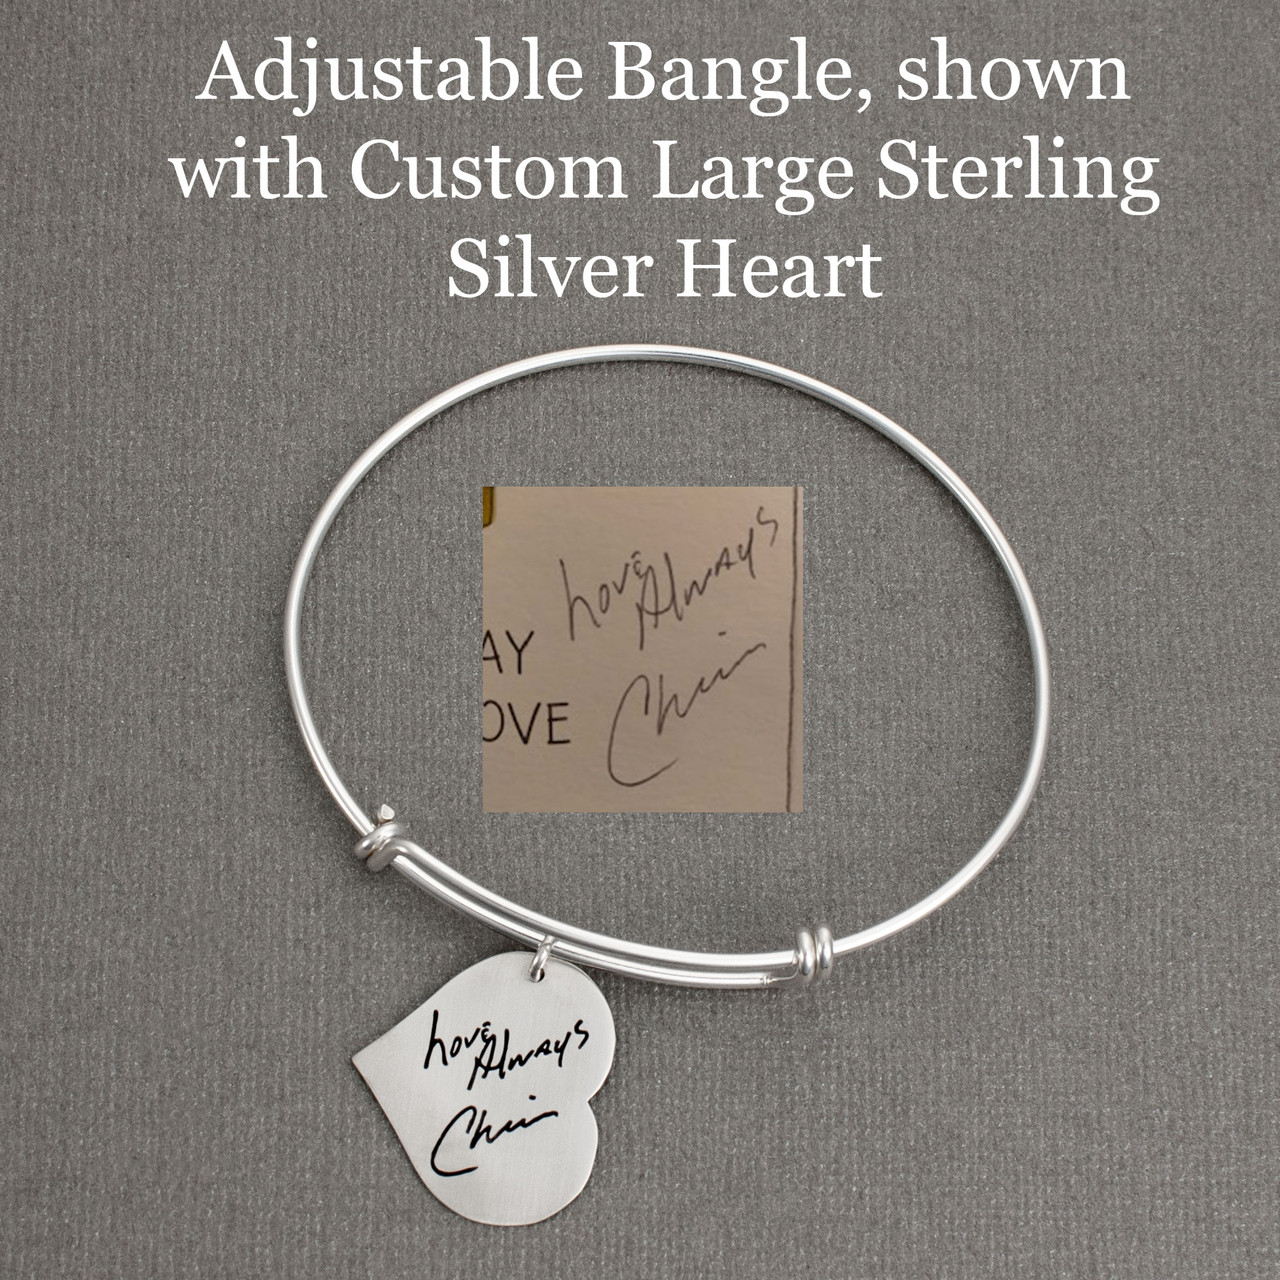 Adjustable Bangle, shown with Custom Large Sterling Silver Heart